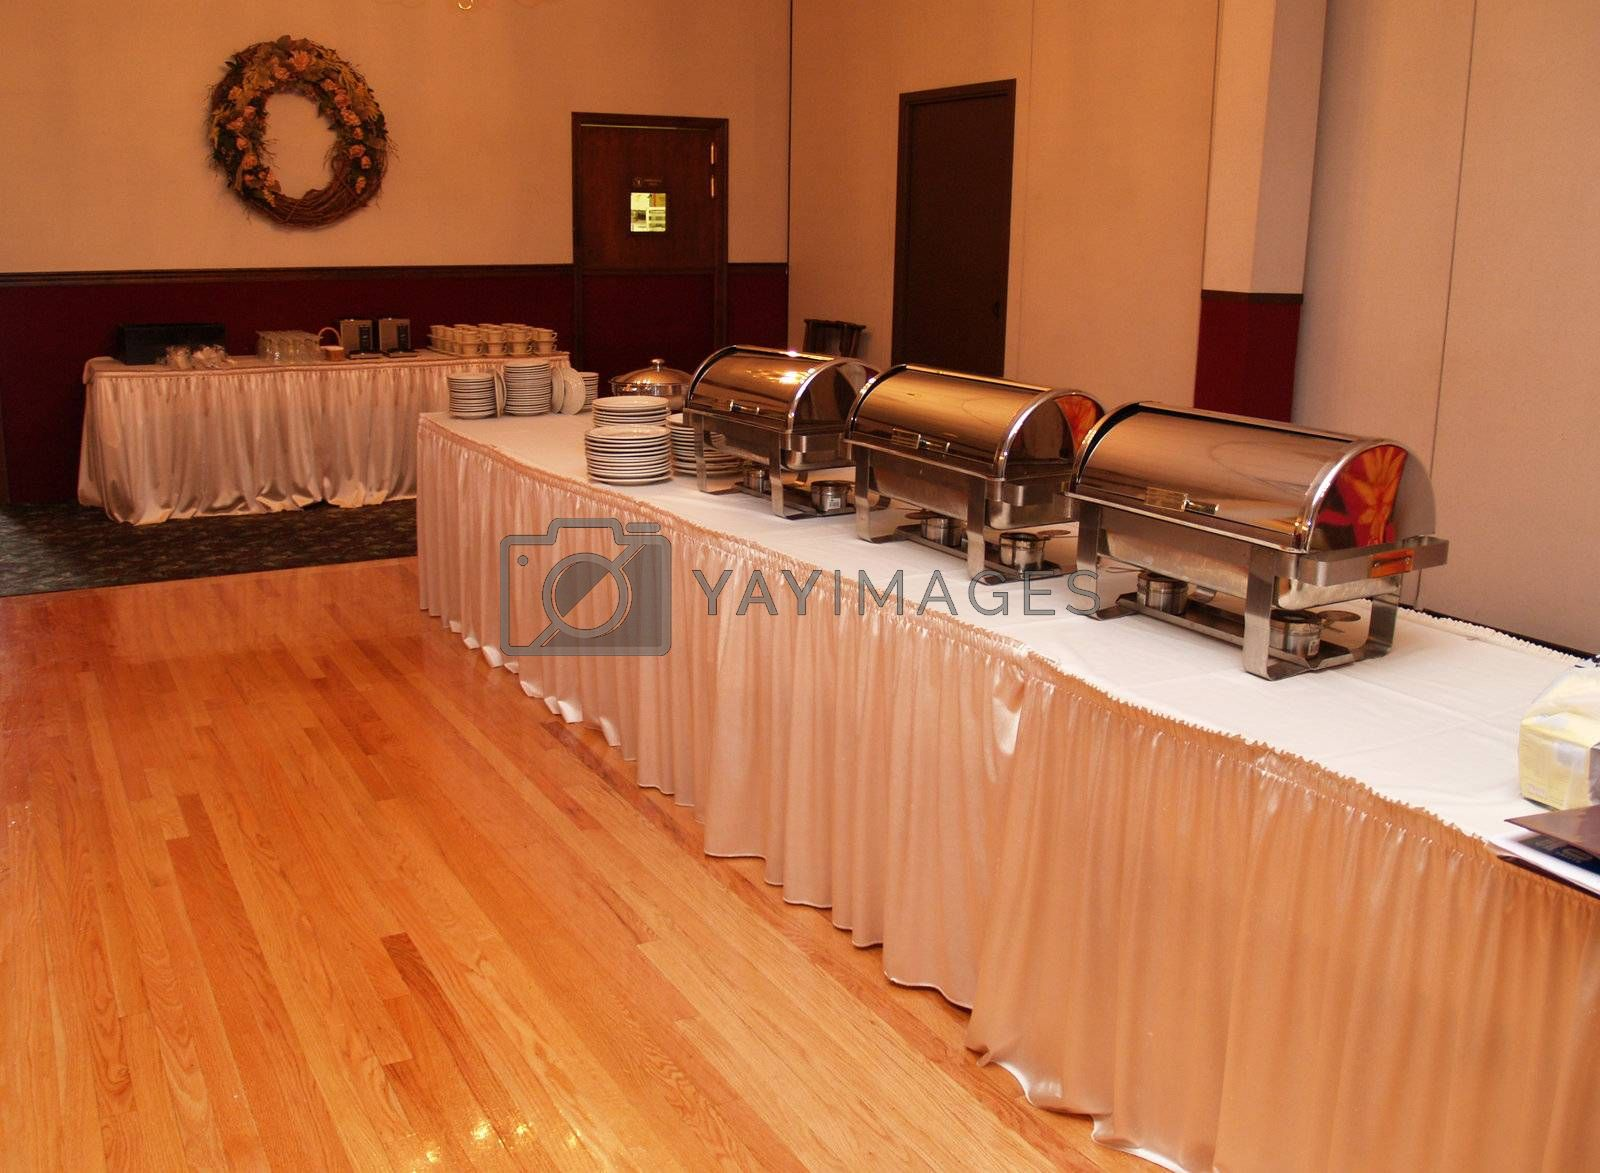 cheffing dishes setup on a table in a banquet hall